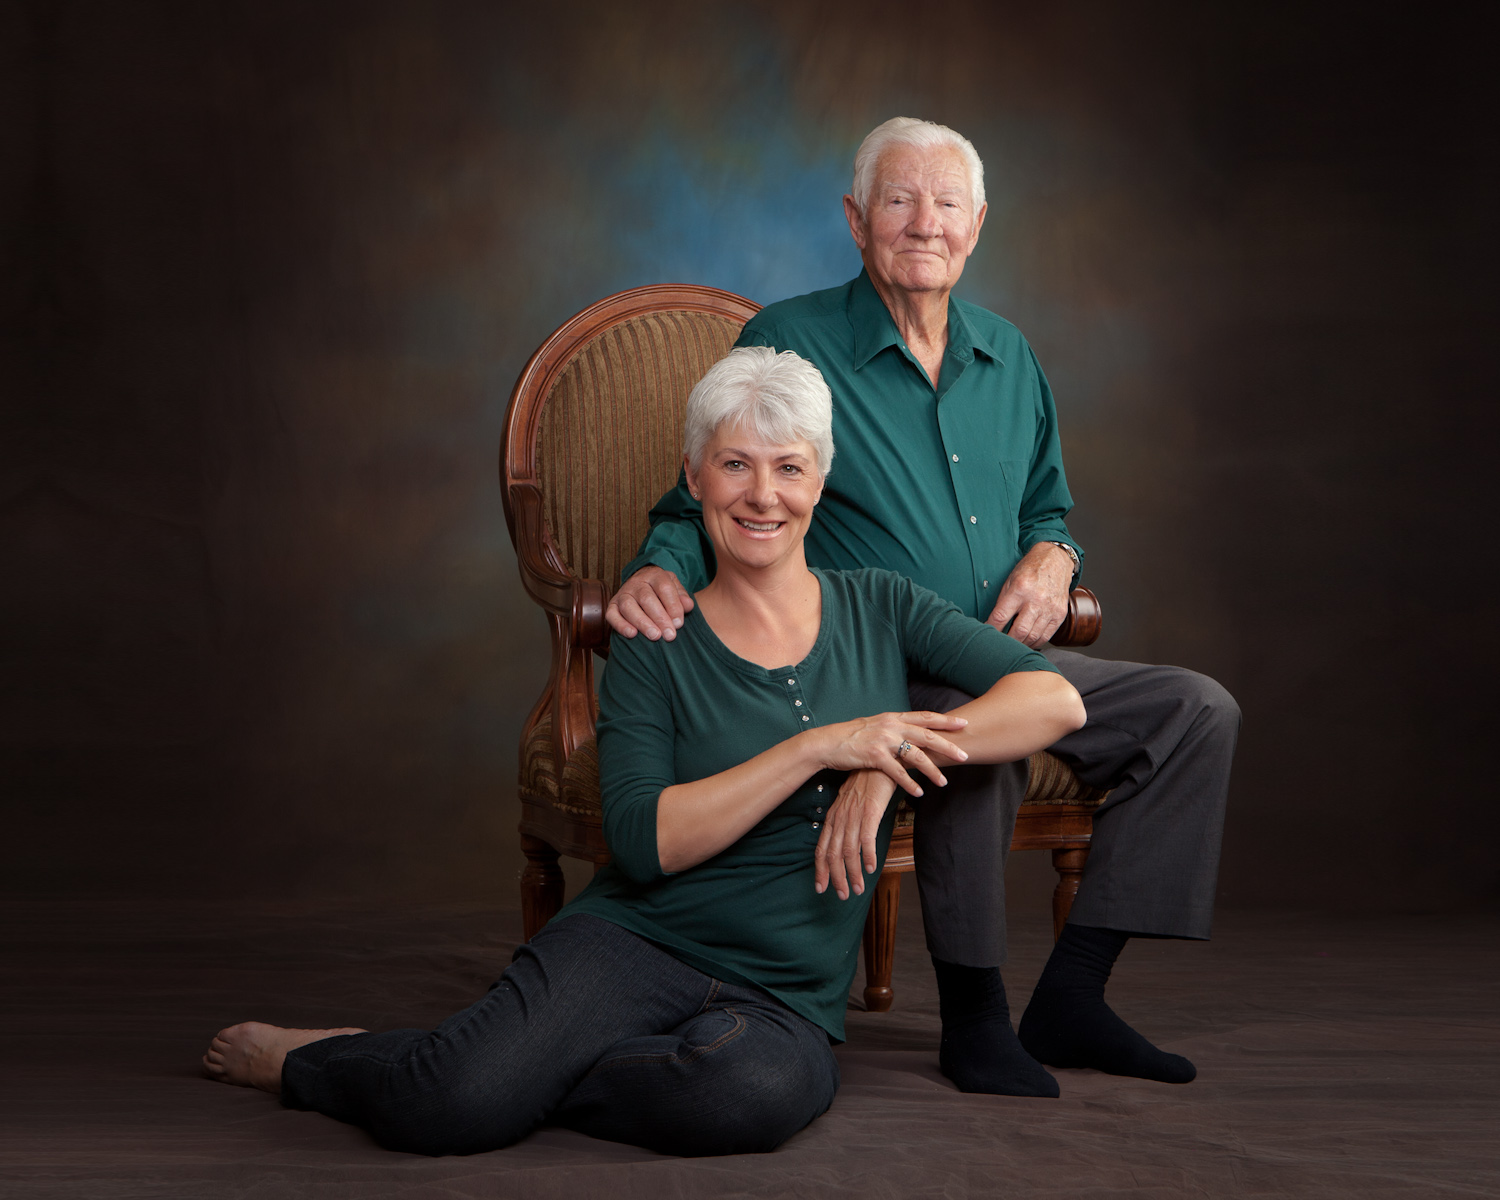 generations photography studio scottsdale phoenix